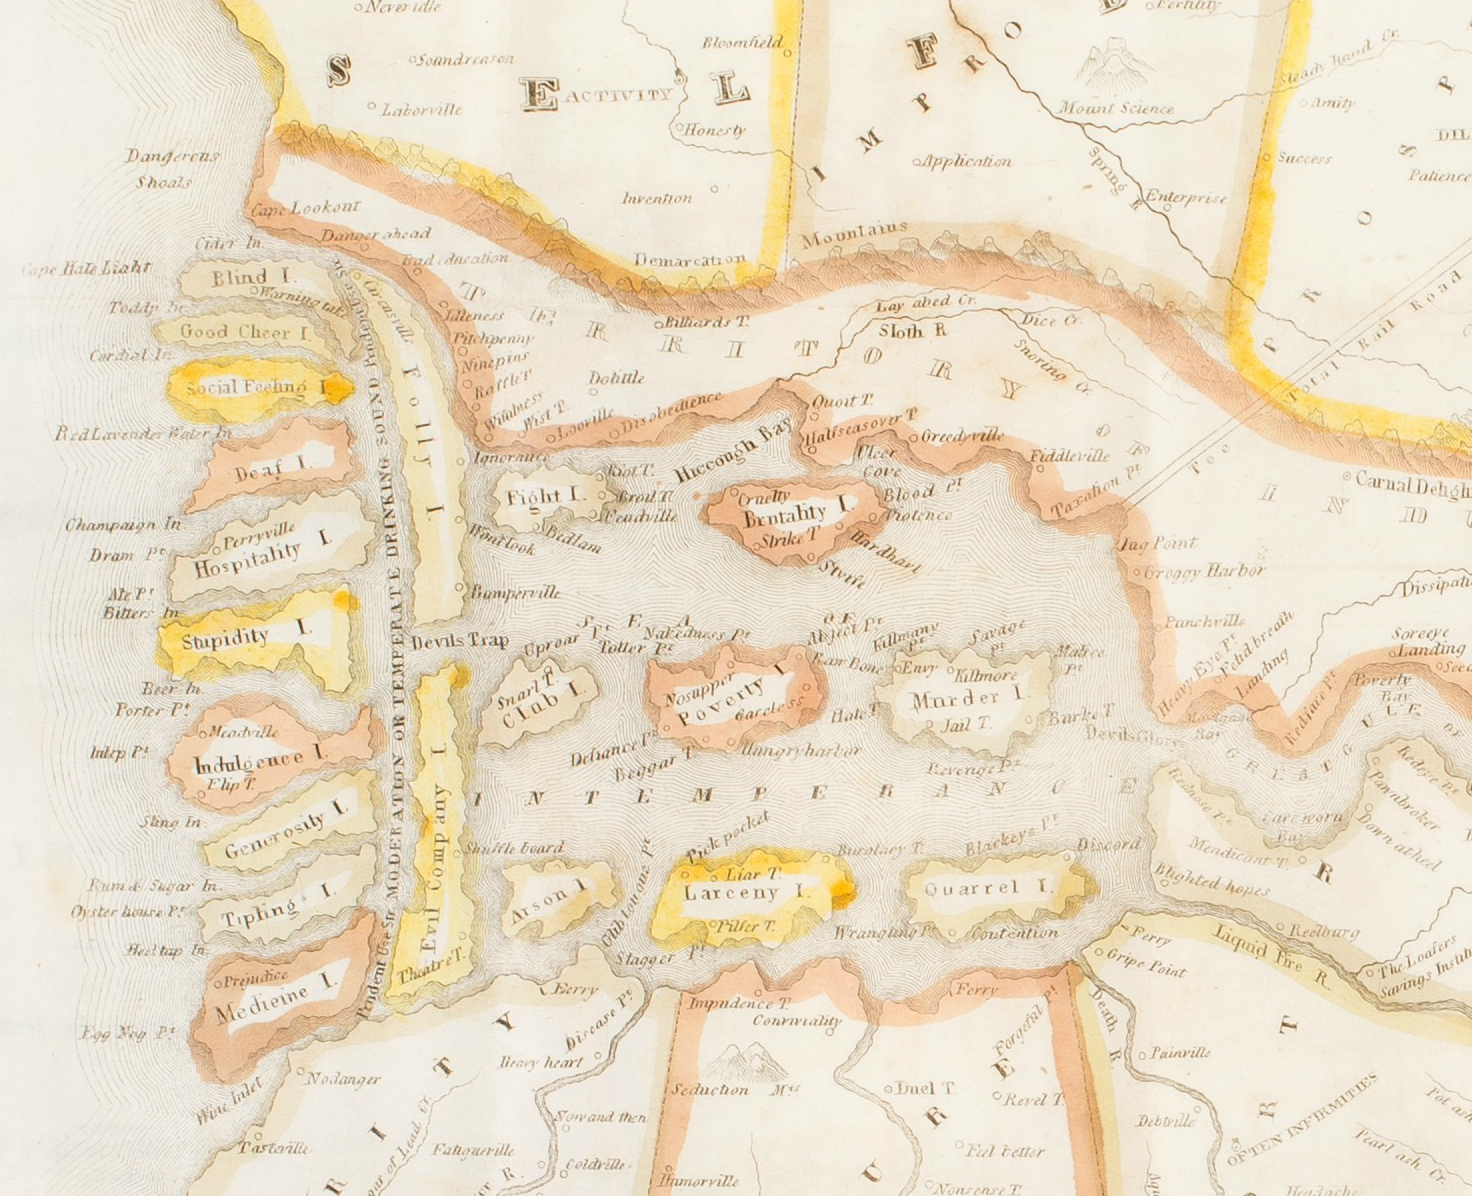 AAS Temperance map detail 1